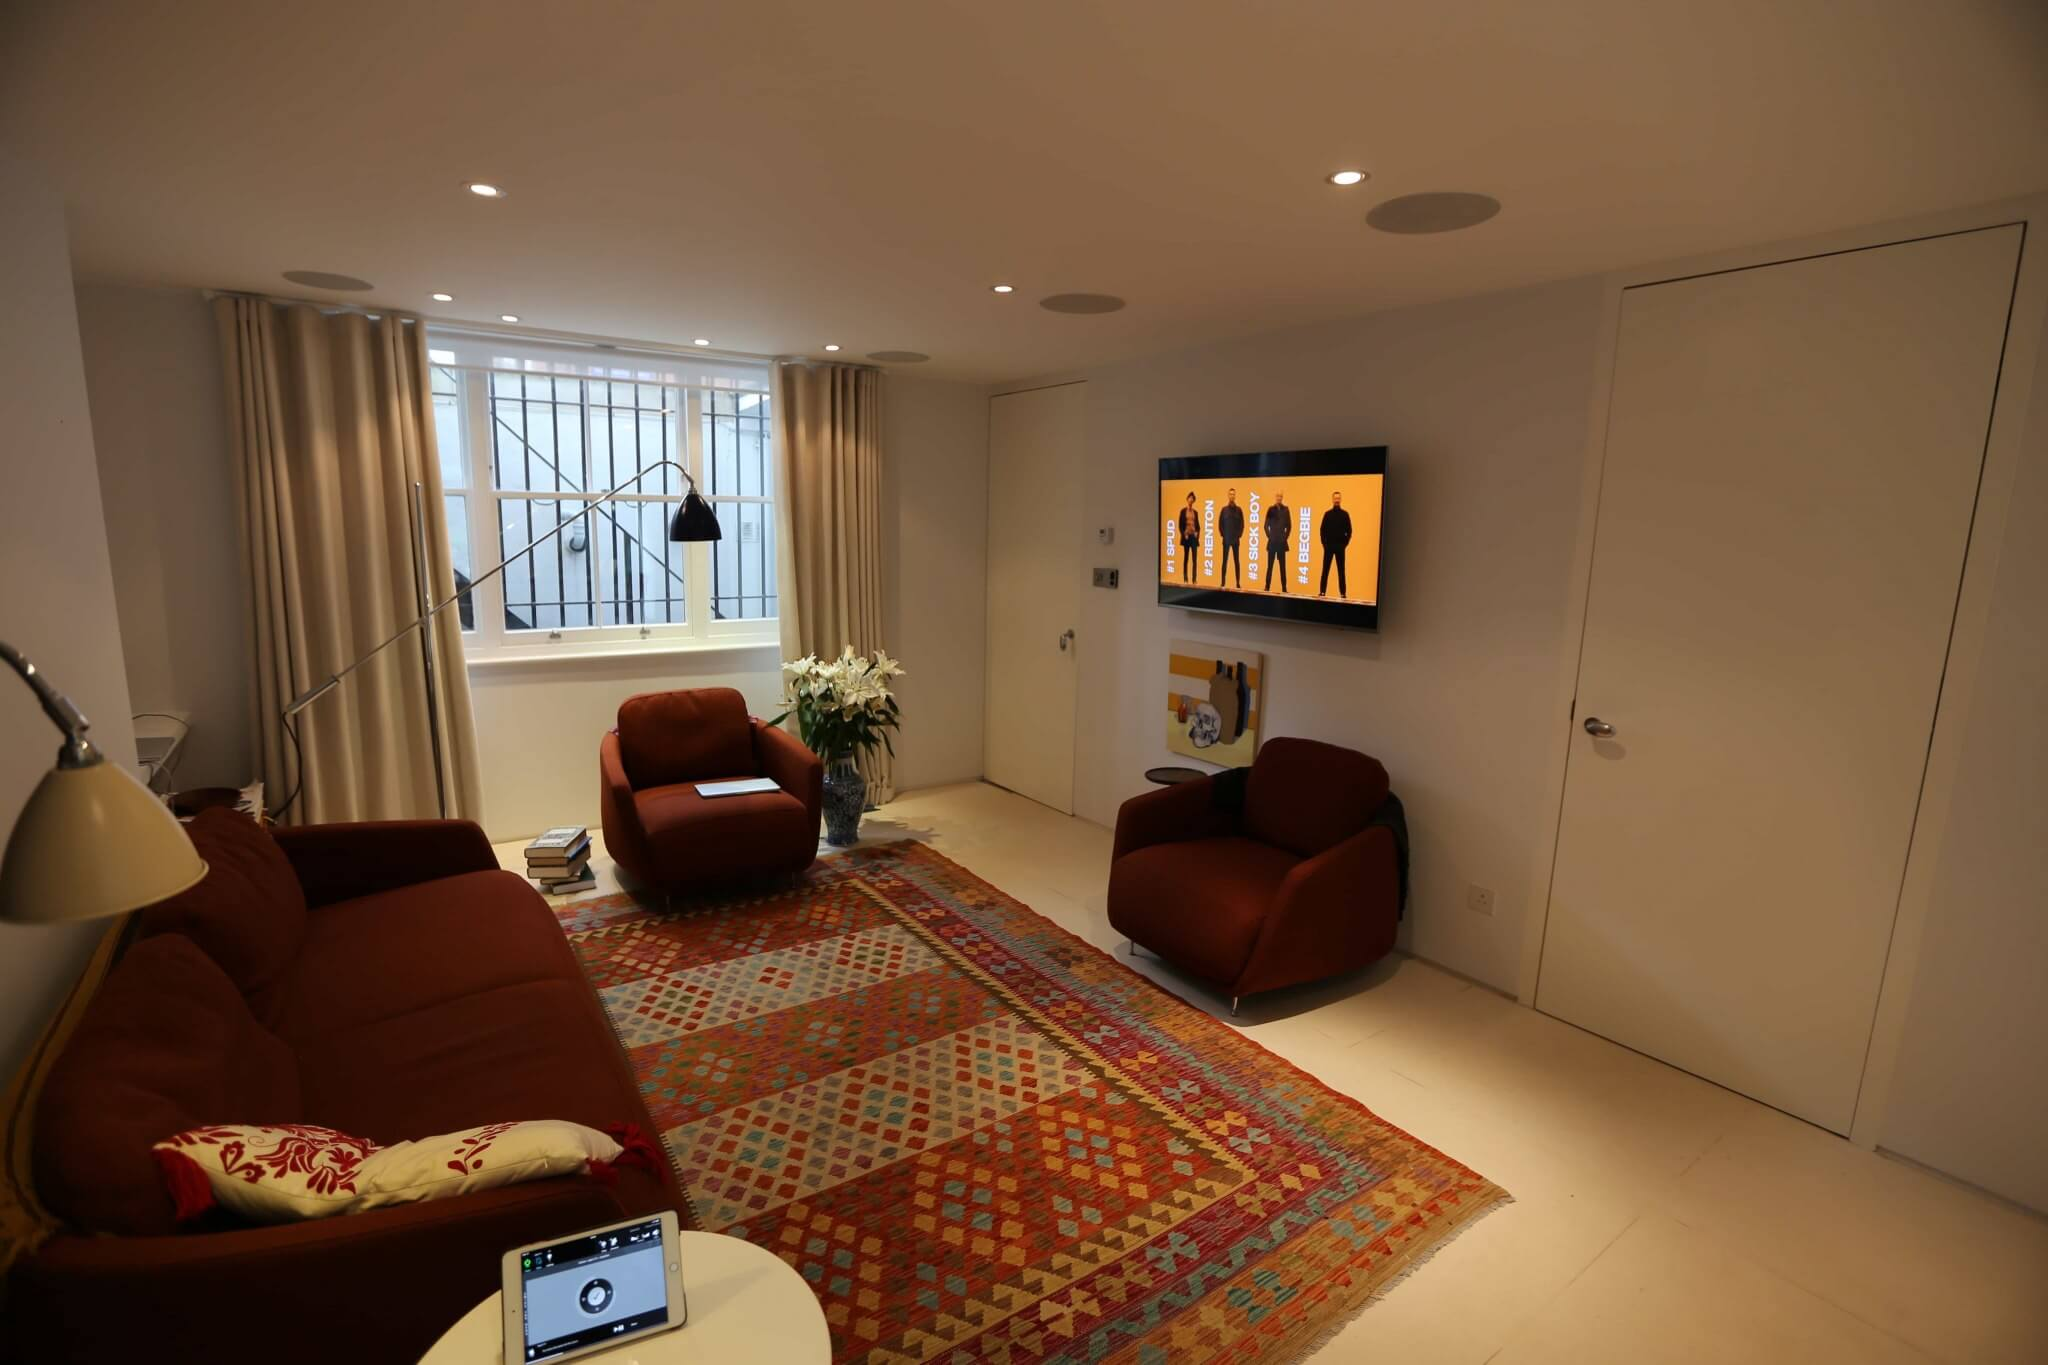 Wall Mounted TV with Crestron Video Distribution